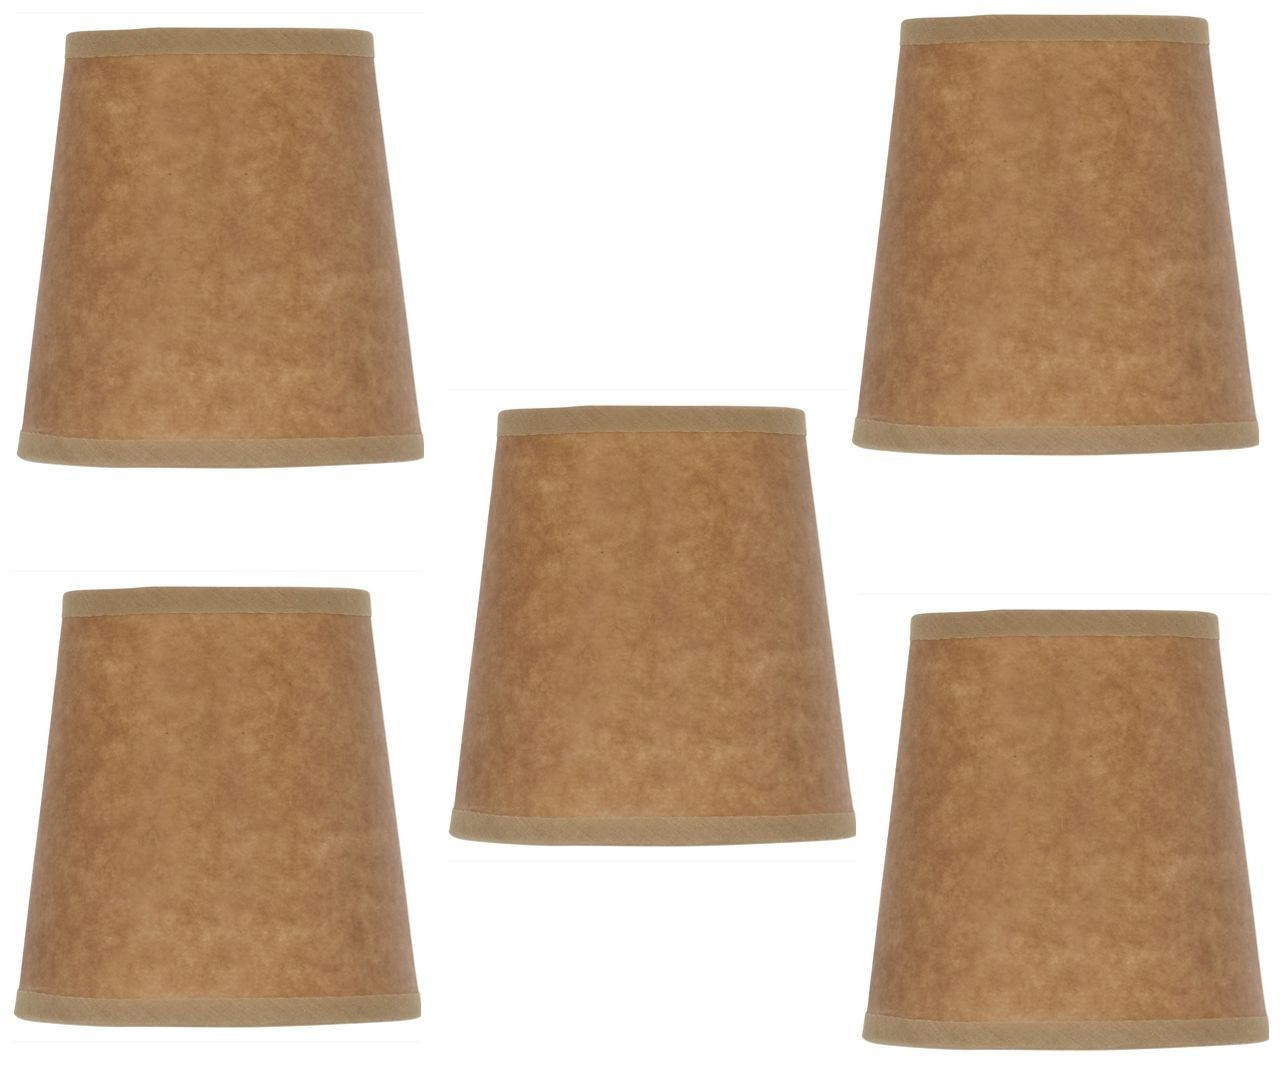 Mini Chandelier Shades Clip On Small Lamp Shades Set Of Five Oiled Craft Paper For More Information Vis Small Lamp Shades Mini Chandelier Chandelier Shades